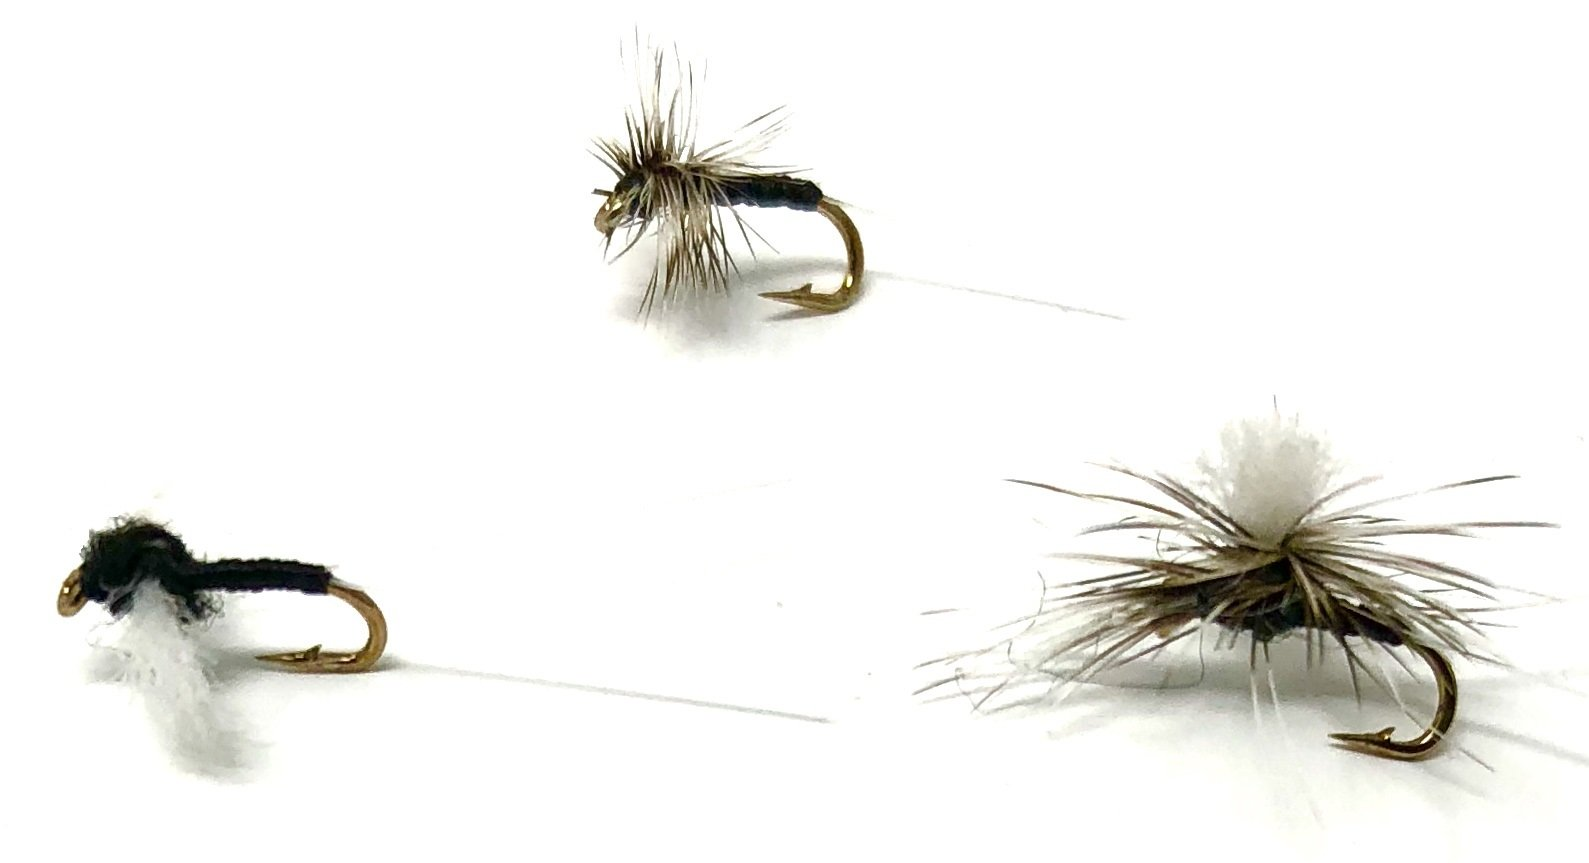 Fly Fishing Assortment TRICO Flies for Trout and Other Freshwater Fish (TRICO, PARACHUTE, AND SPINNER) - 18 Hand Tied Sizes 20, 22, 24 (2 of Each Size and Pattern)